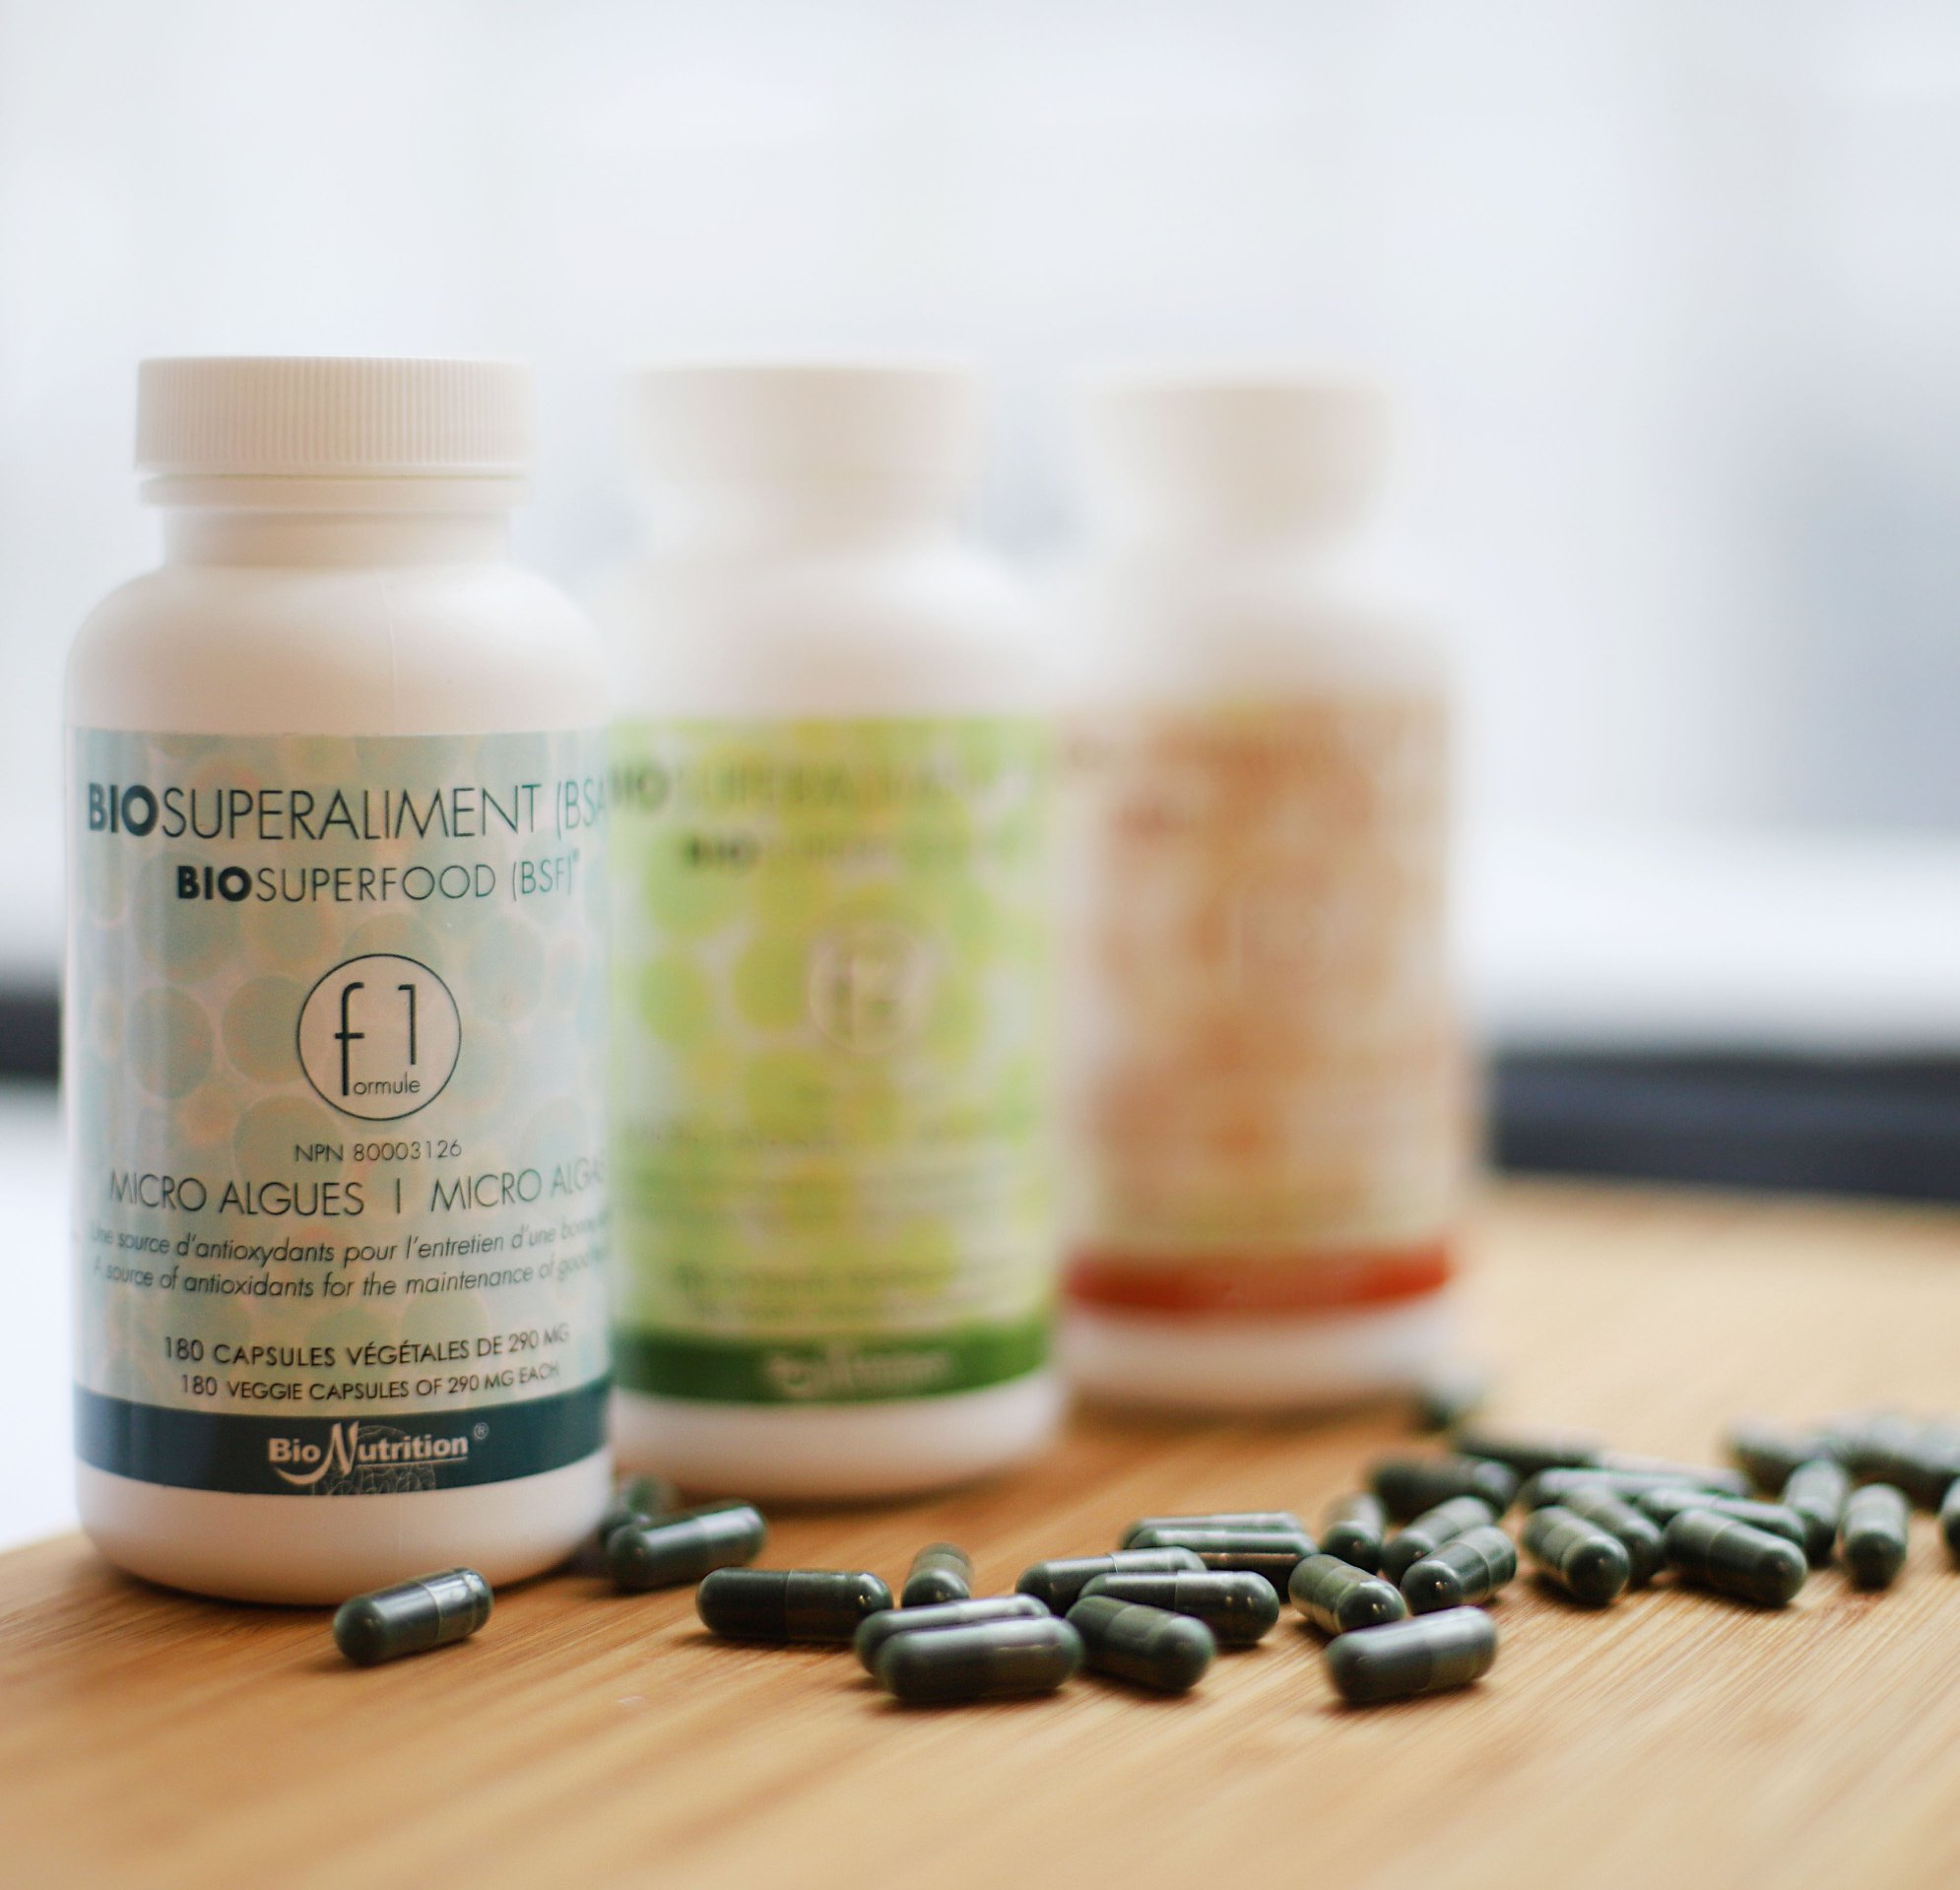 BioSuperfood comes in three formulas to accommodate different states of health.